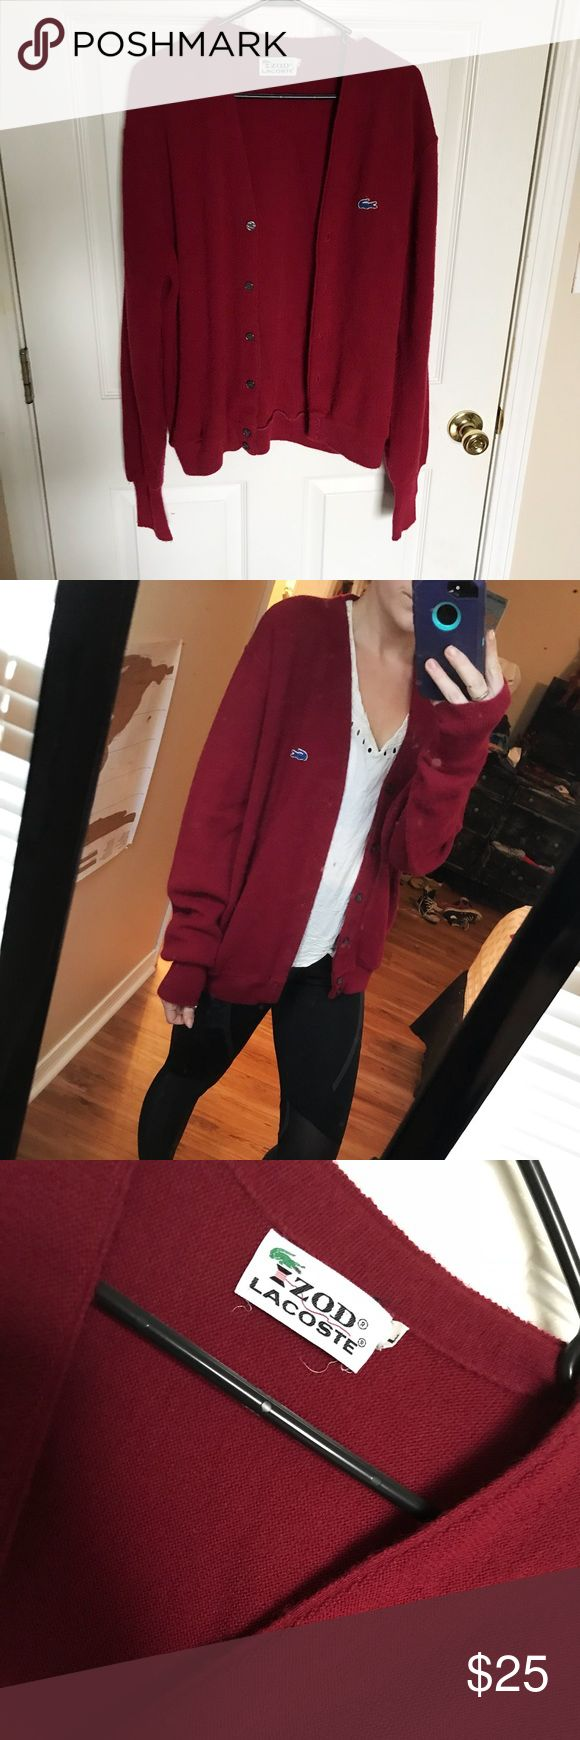 Vintage Lacoste cardigan Vintage maroon colored cardigan from Lacoste, size large but fits like a medium!   No holes or stains. No trades. Bundle for discounts!  Or shoot me an offer!! Lacoste Sweaters Cardigans